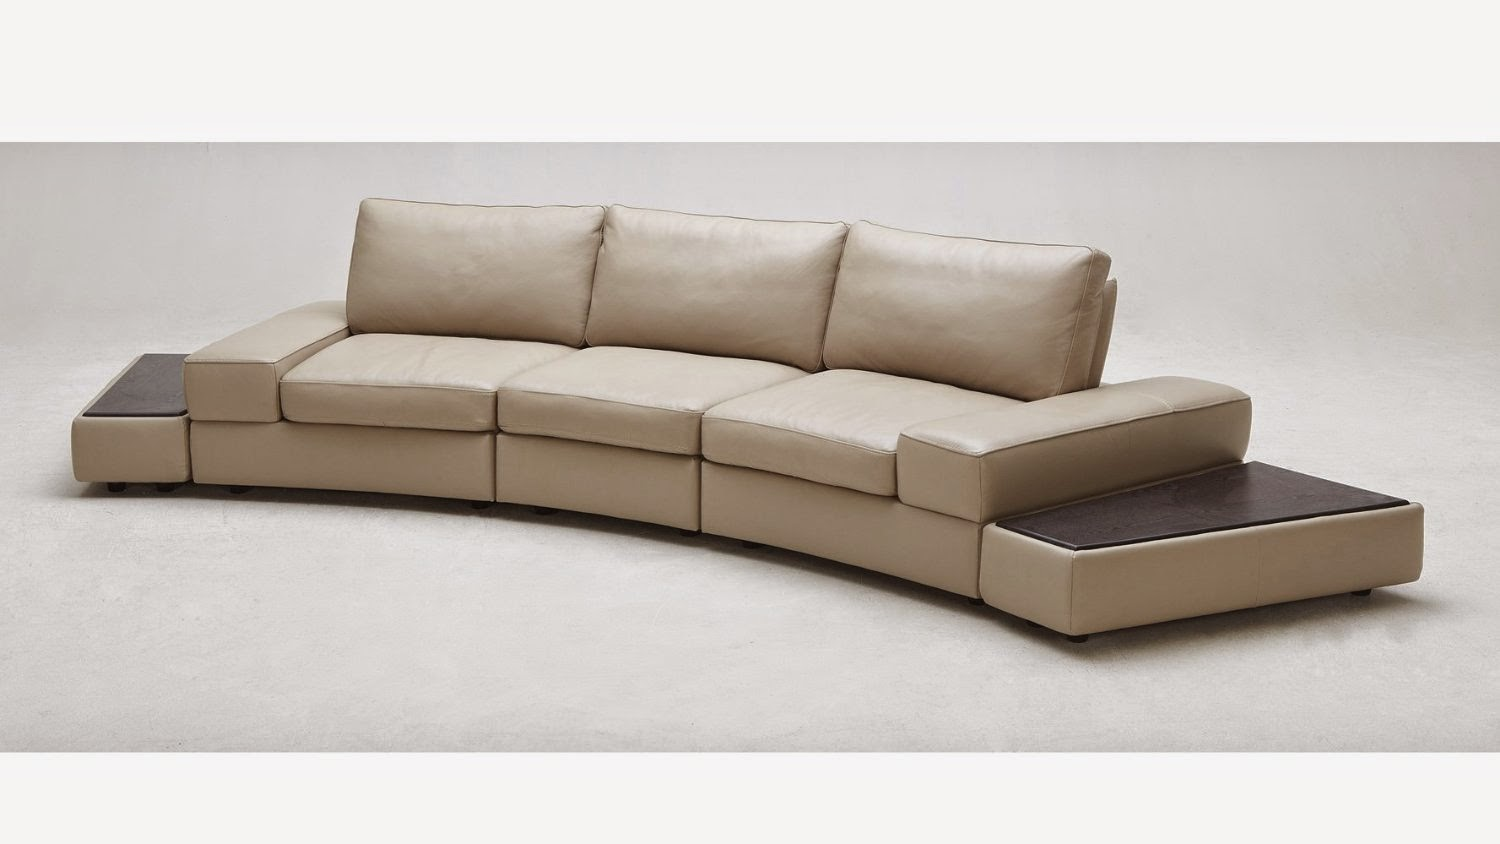 Curved Sofa Couch For Sale: Large Curved Corner Sofas